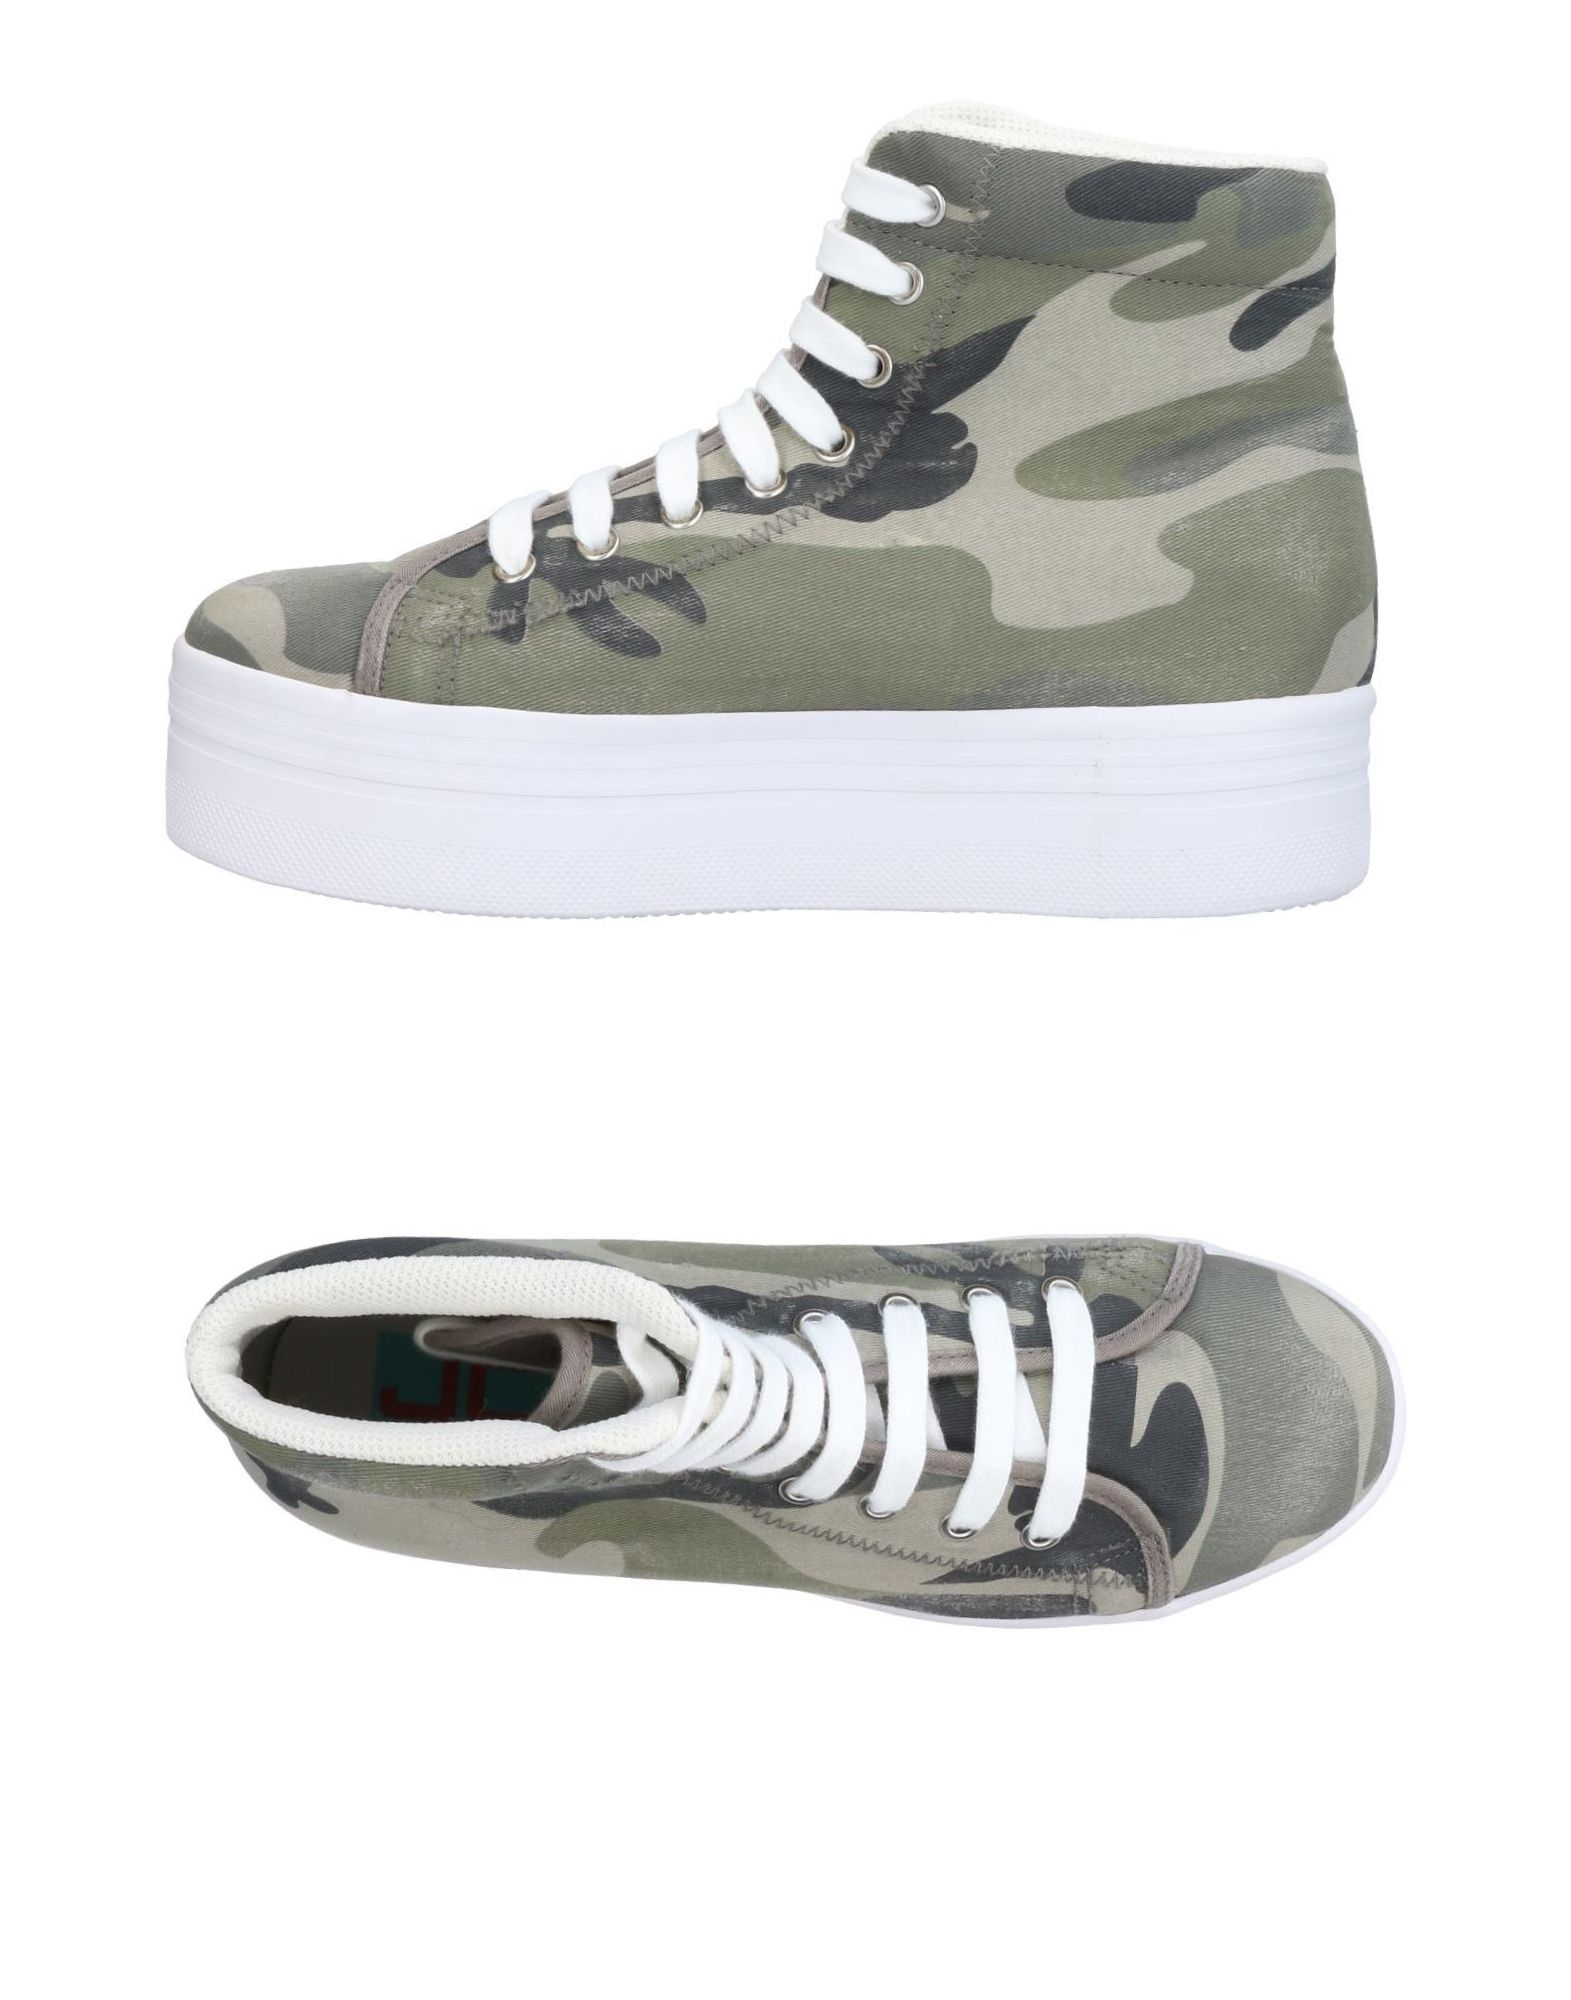 JC PLAY BY JEFFREY CAMPBELL Sneakers in Military Green